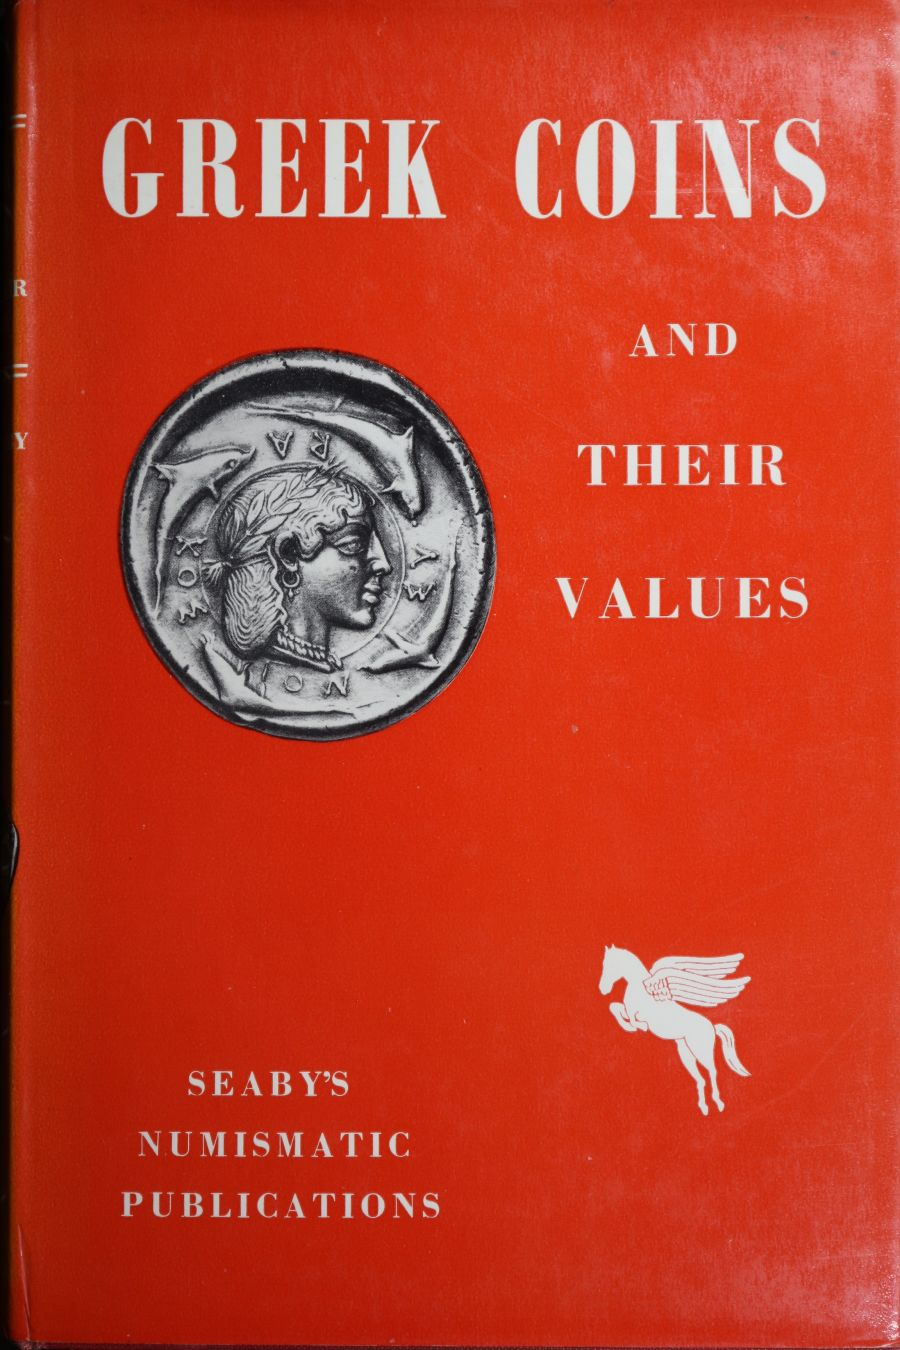 Greek coins and their values, 2nd edition, H. A. Seaby